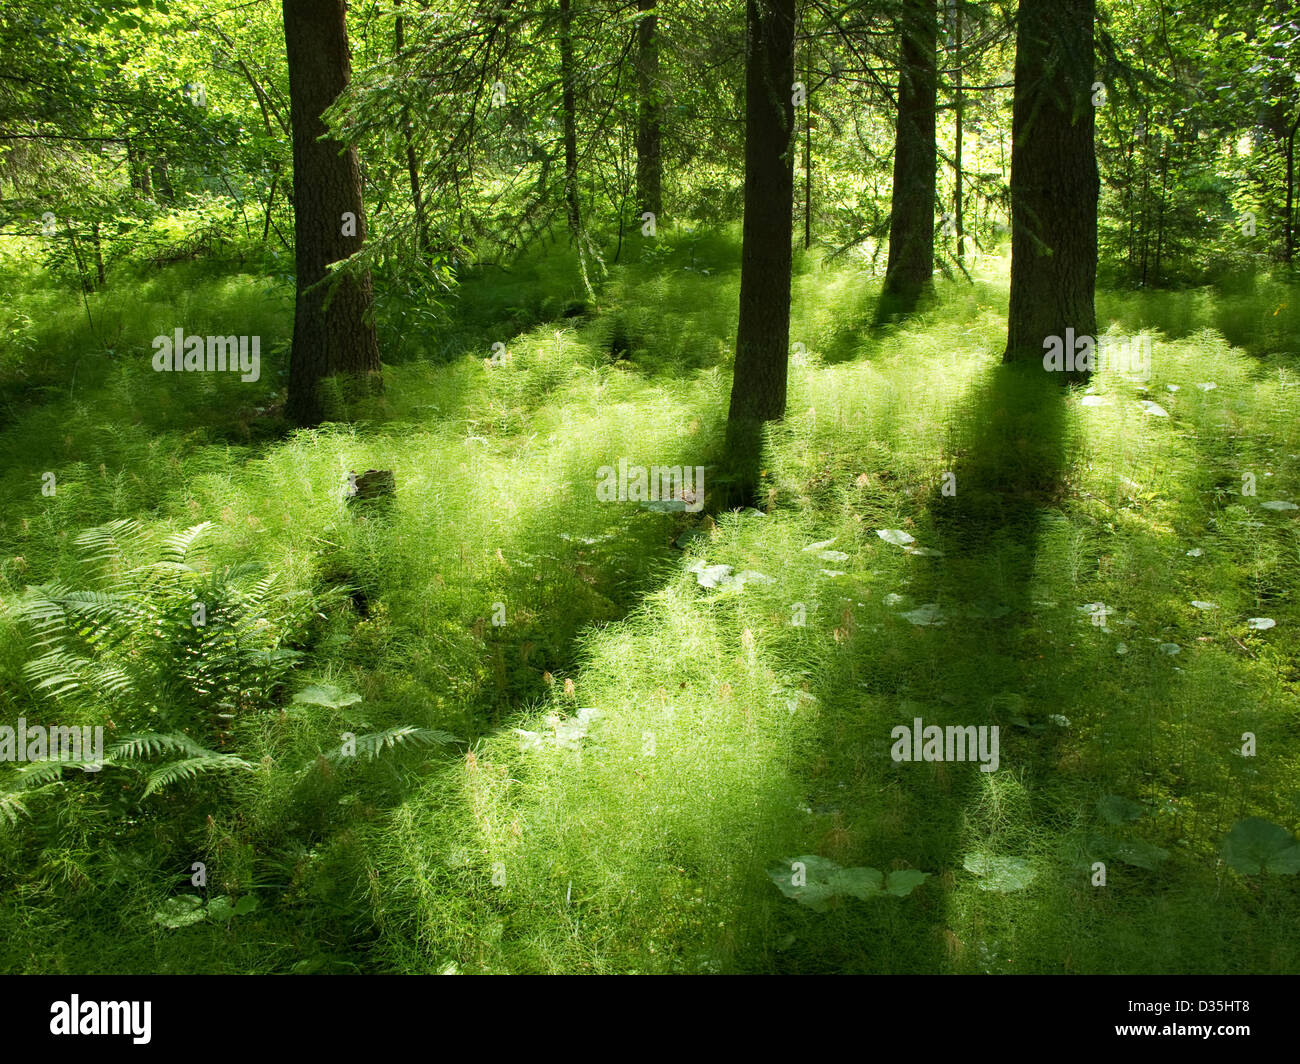 Sunshine in the under storage of a coniferous forest in Sweden - Stock Image